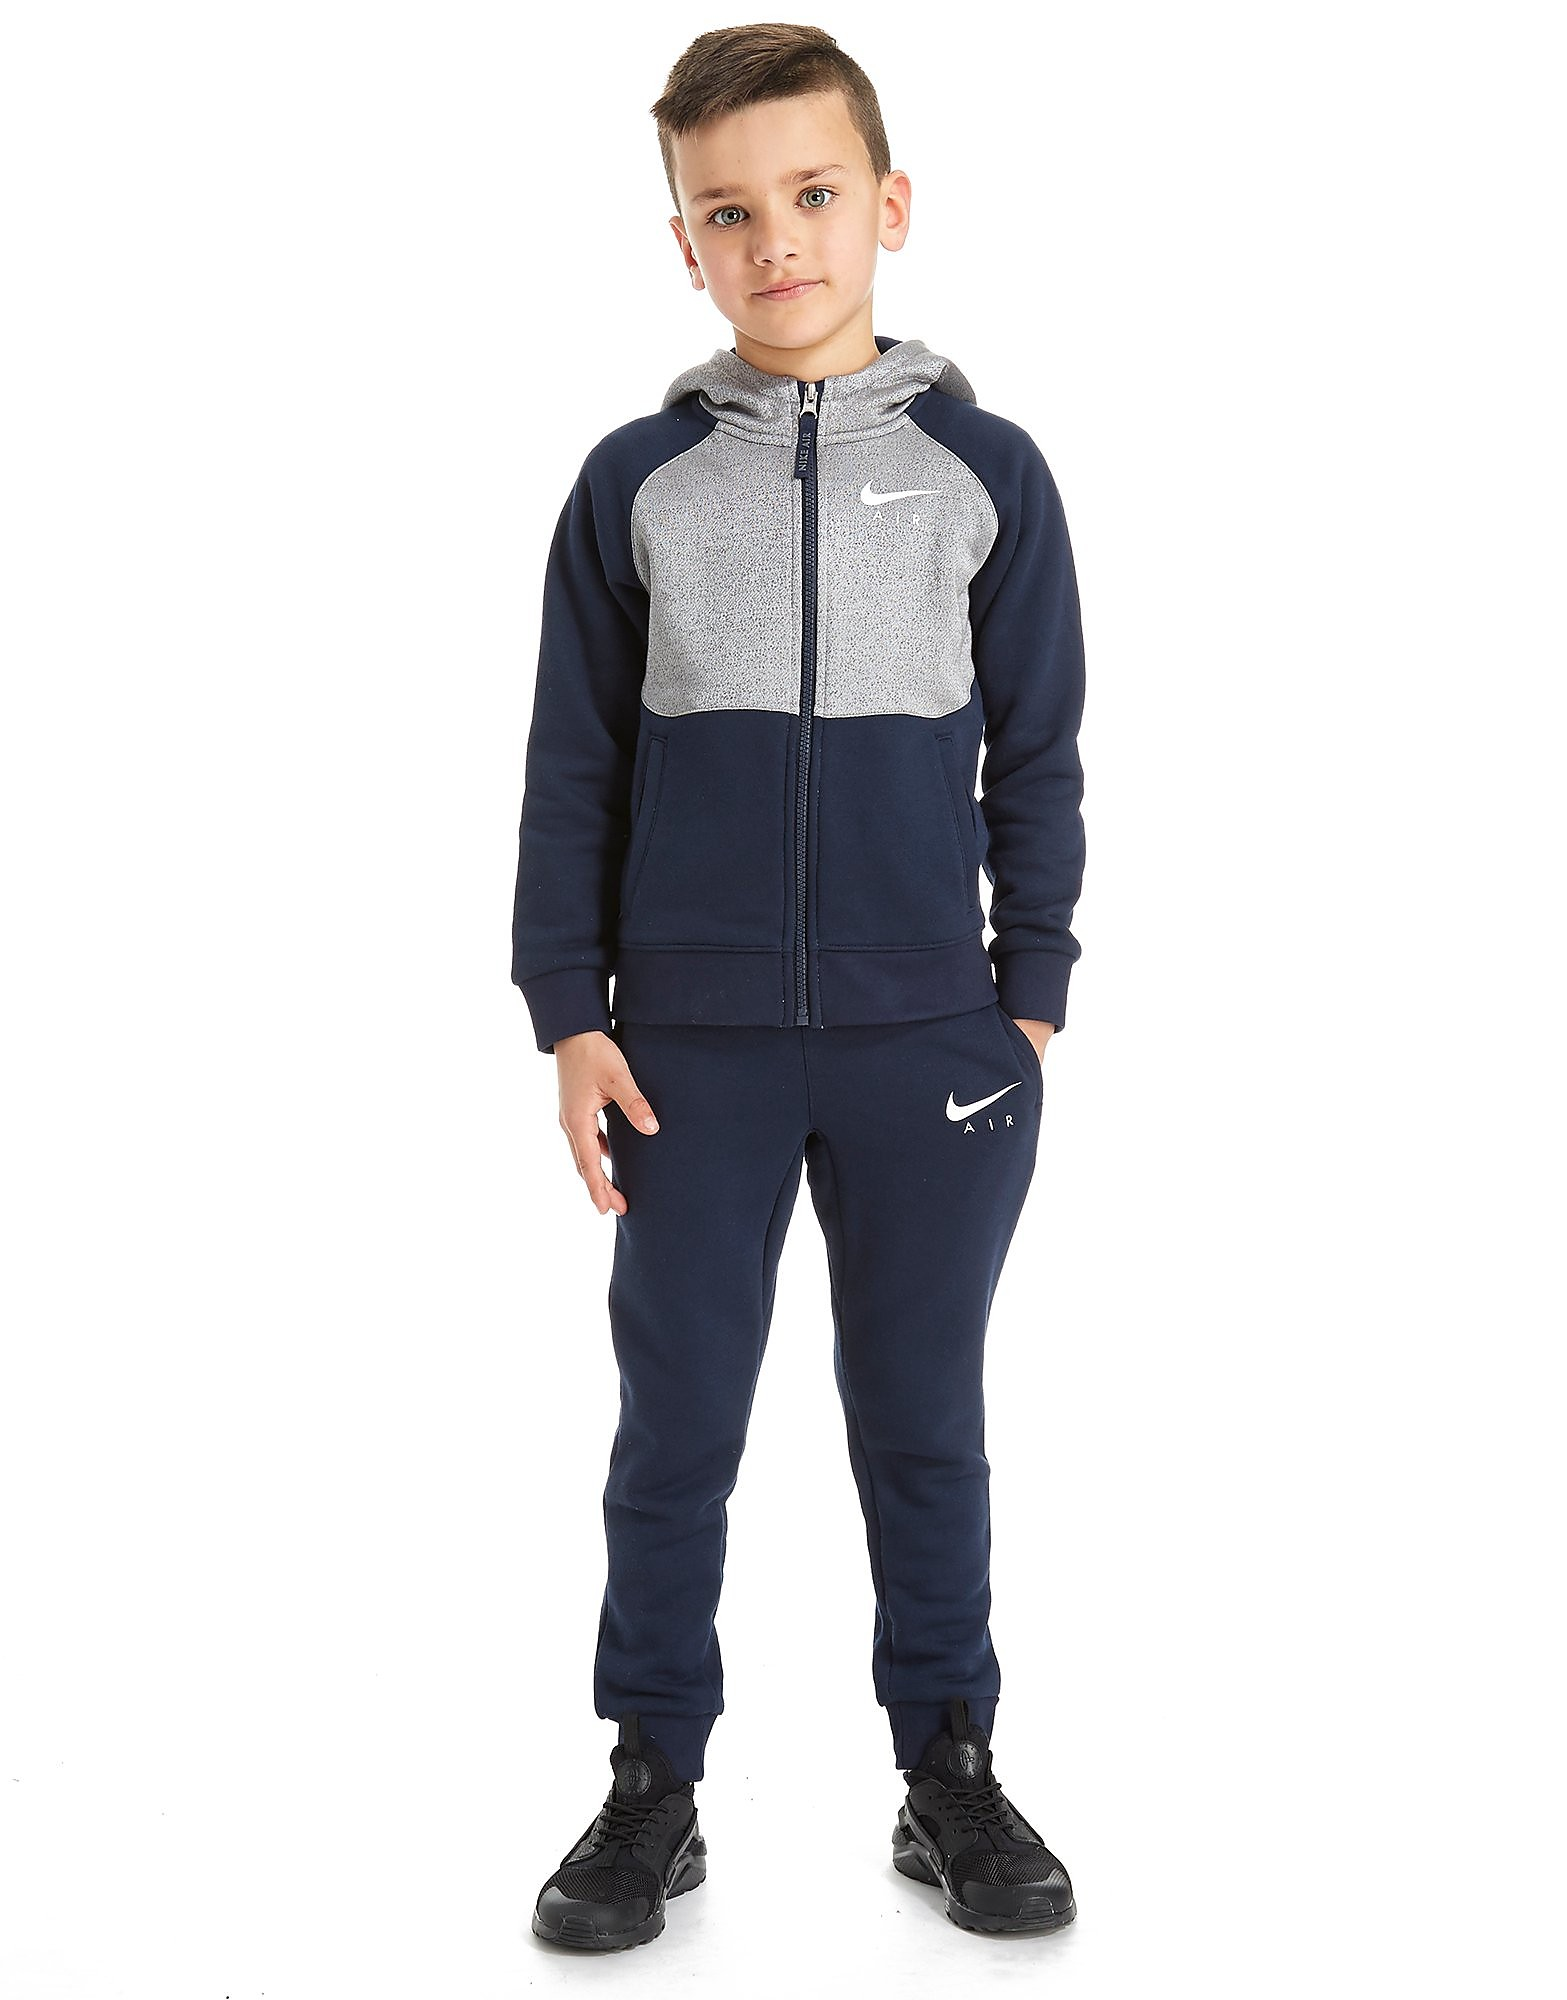 Nike Air Full Zip Suit Children